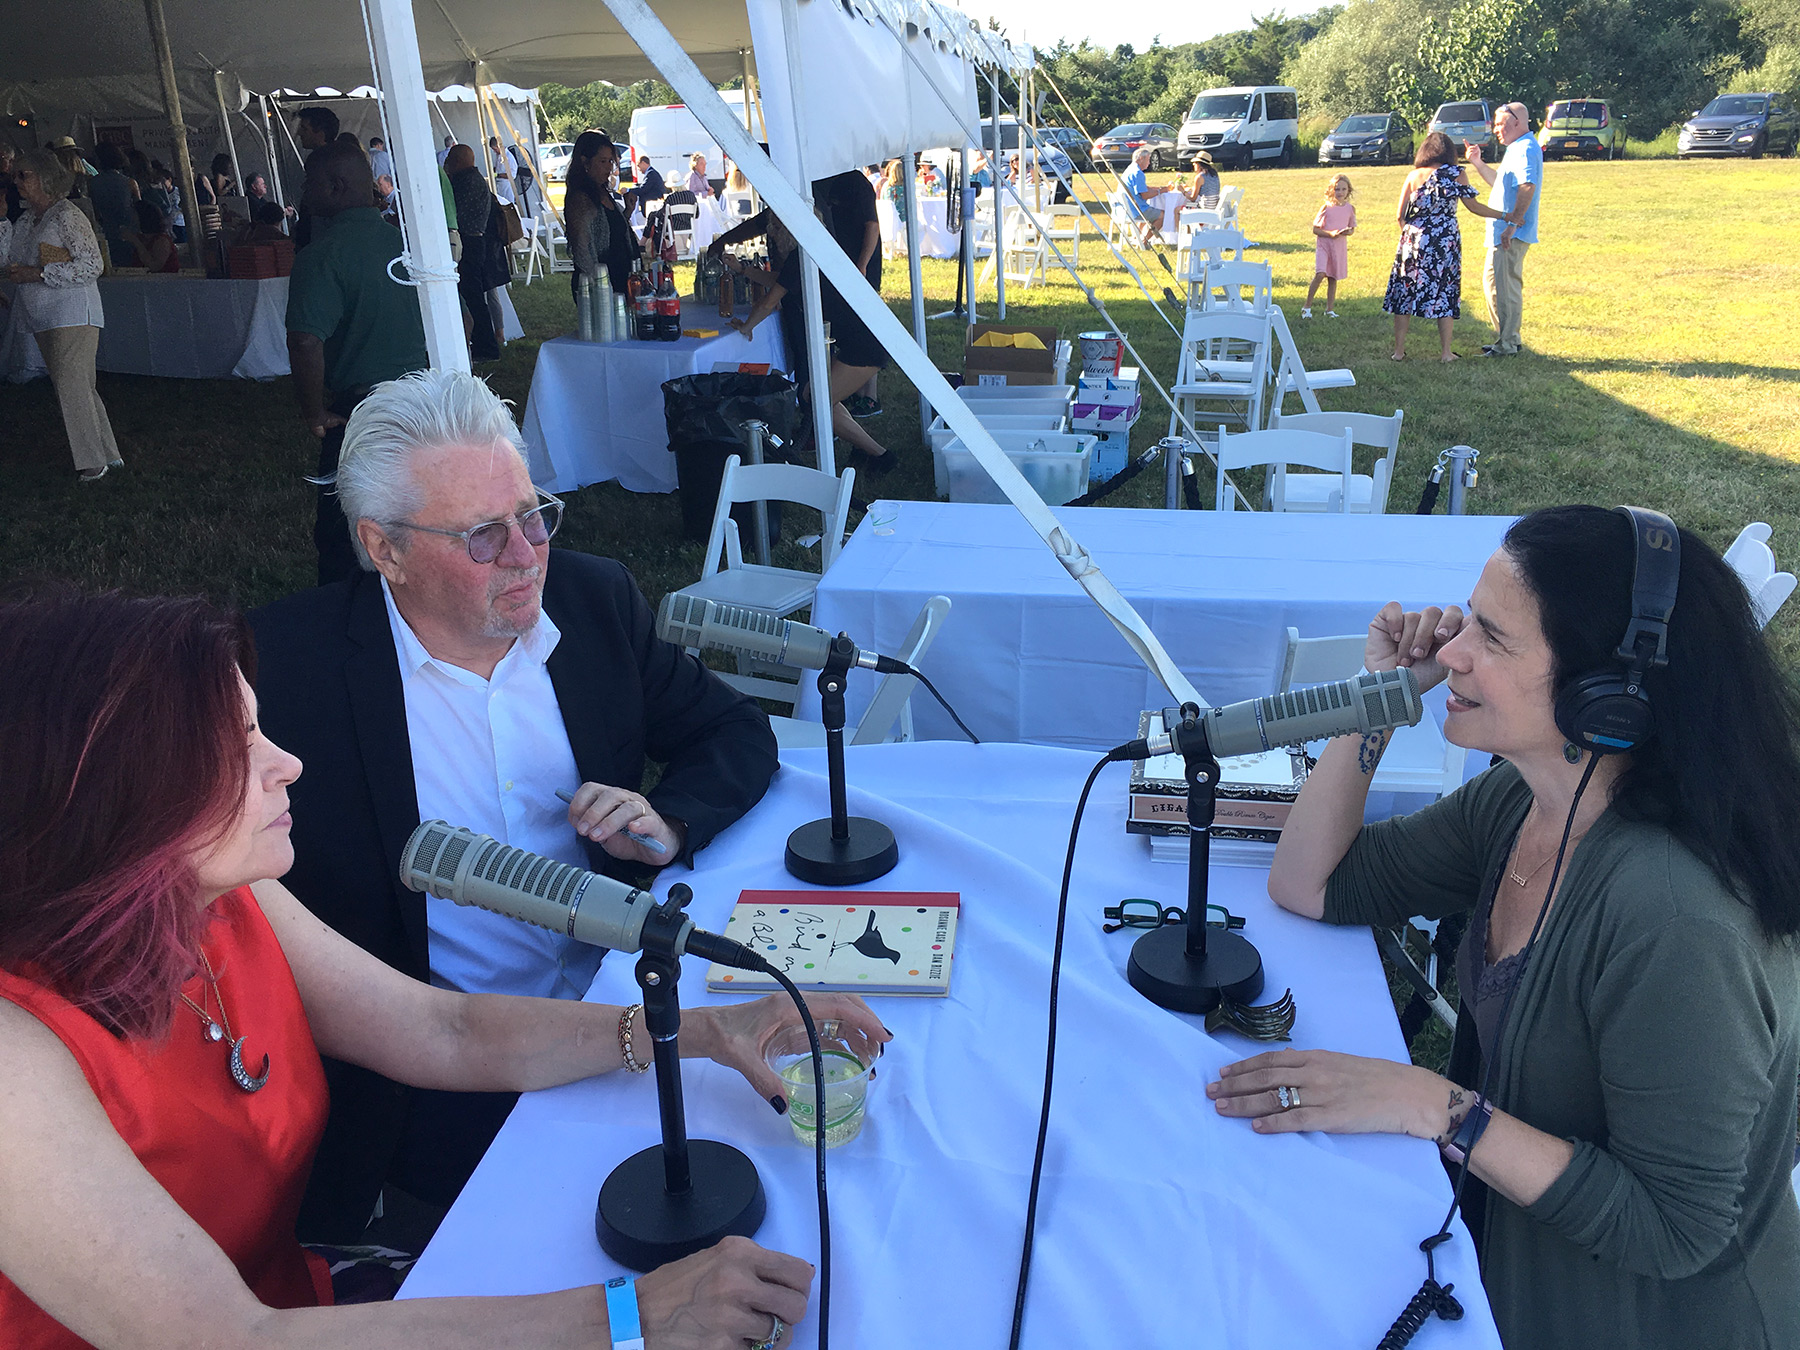 Interviewing Rosanne Cash and Dan Rizzie. Photo by Kelly Loeffler